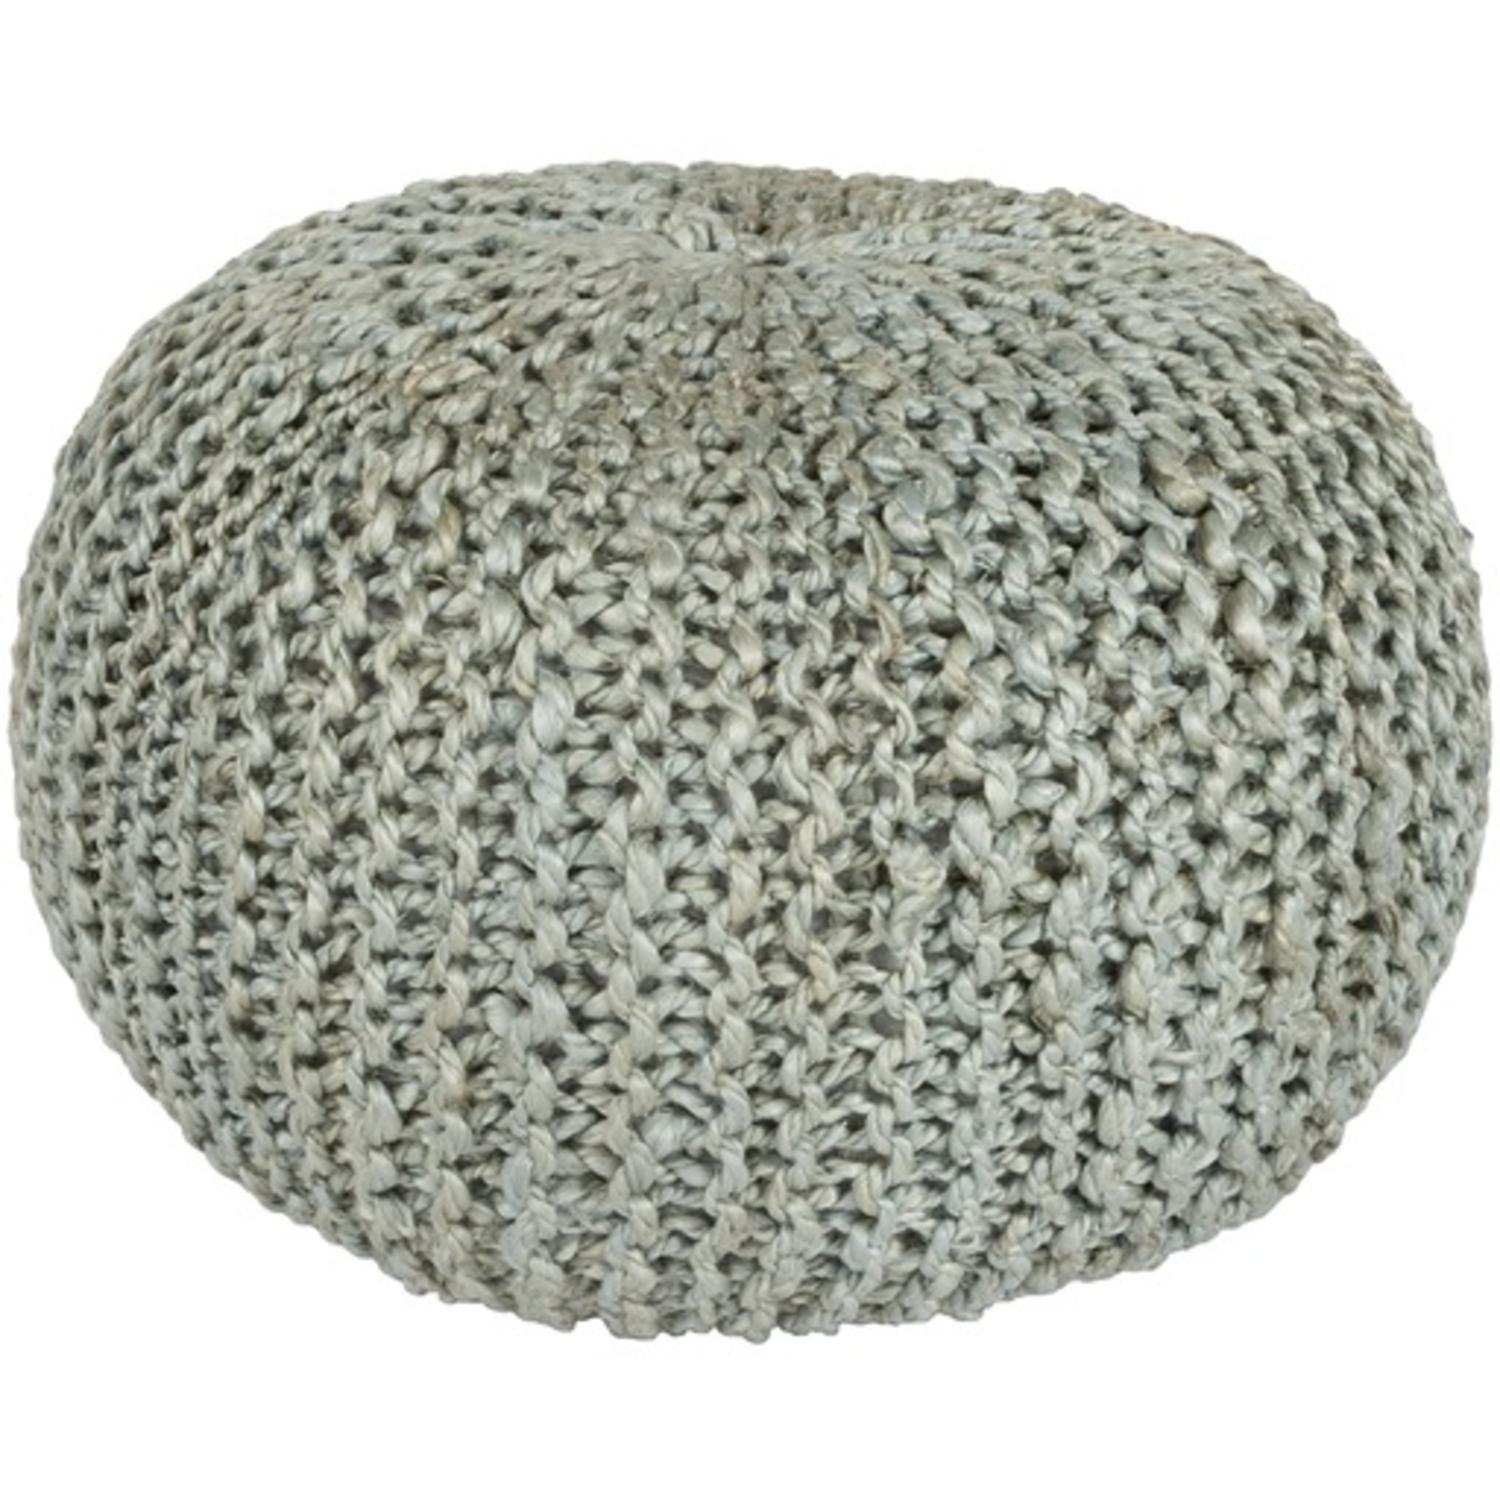 "20"" x 14"" Intricate Detail Dove Gray Hand Crafted Jute Round Pouf Ottoman"